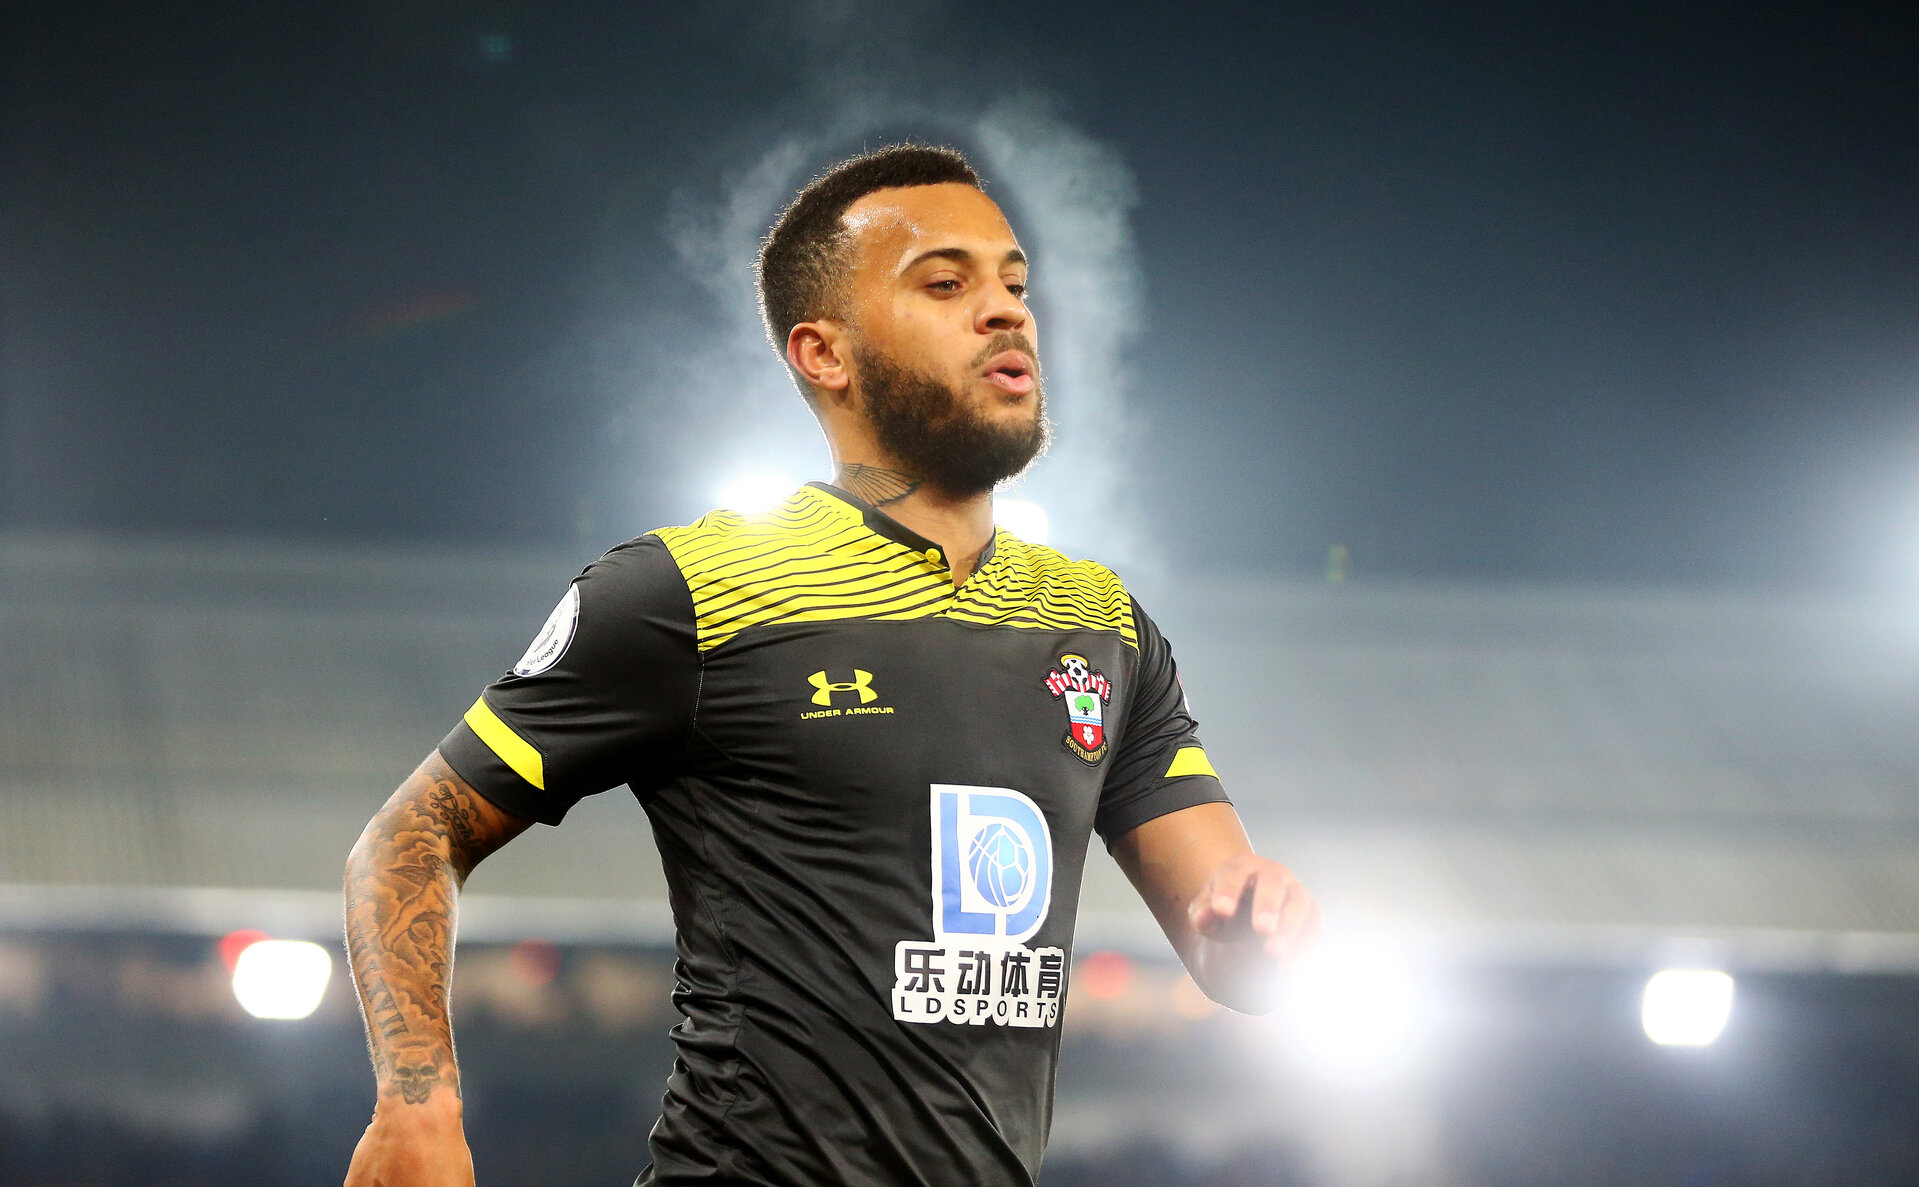 LONDON, ENGLAND - JANUARY 21: Ryan Bertrand of Southampton during the Premier League match between Crystal Palace and Southampton FC at Selhurst Park on January 21, 2020 in London, United Kingdom. (Photo by Matt Watson/Southampton FC via Getty Images)